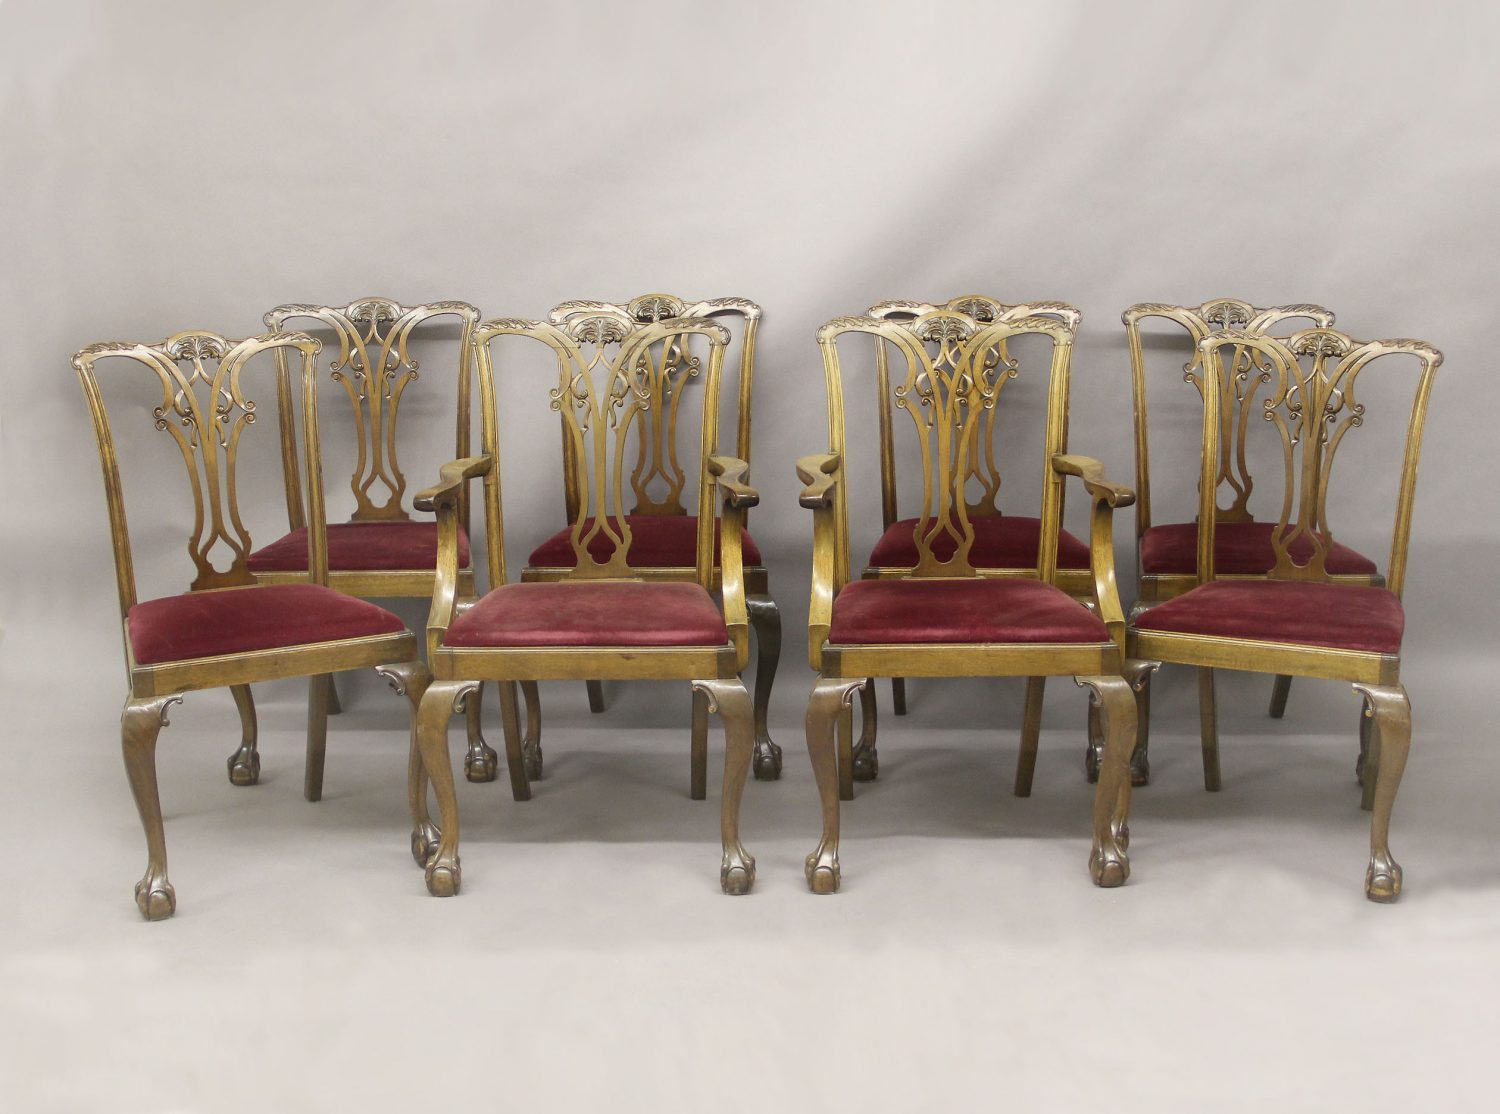 Set of Eight Late 19th Early 20th Century Chippendale Style Dining Chairs